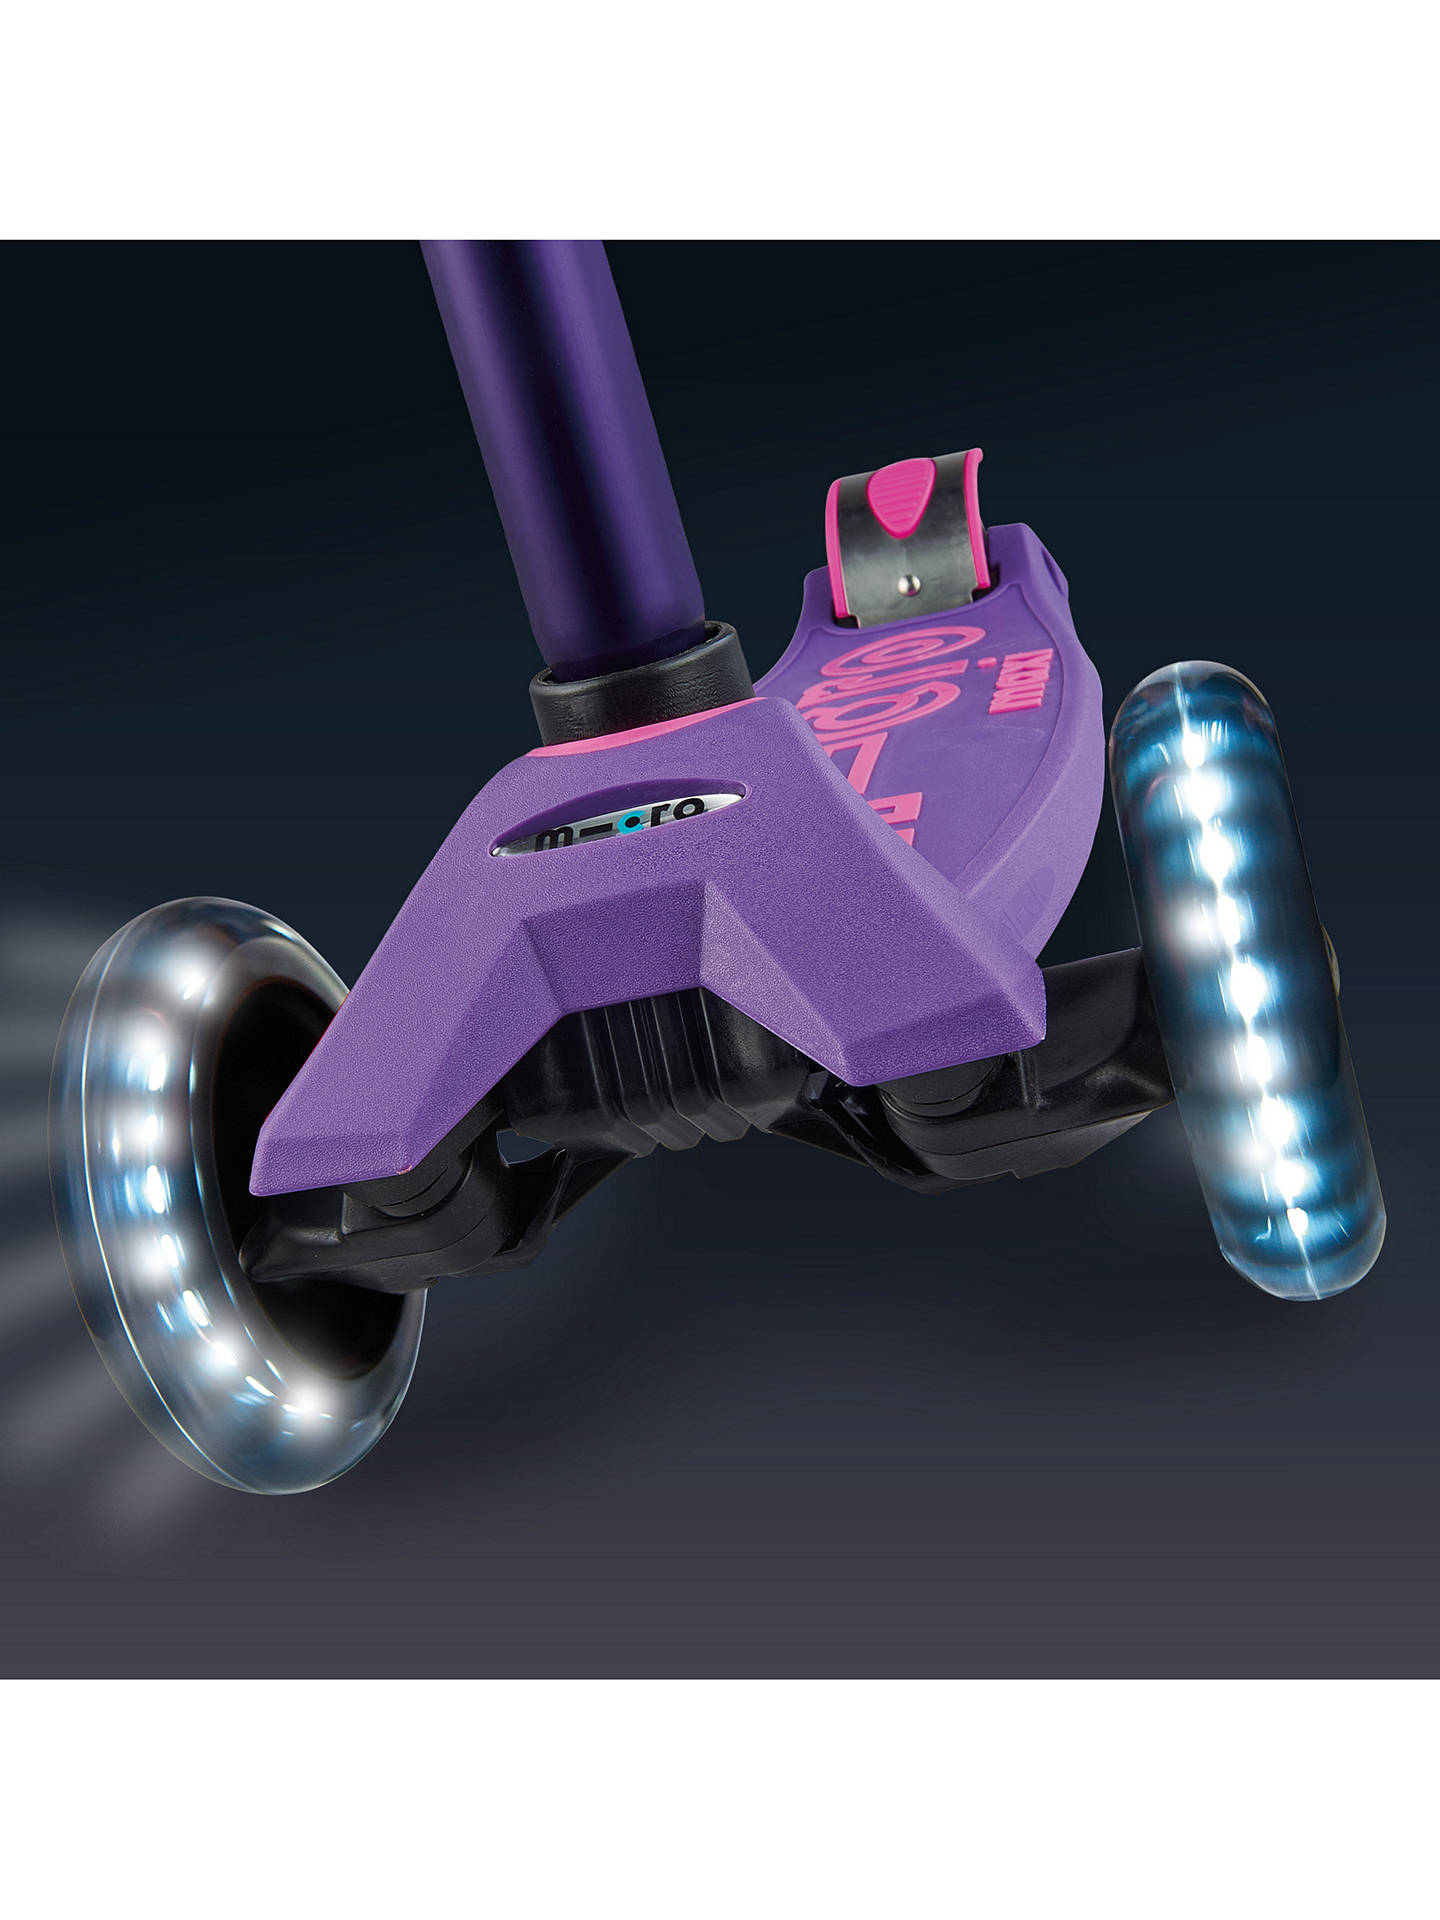 Buy Maxi Micro Deluxe LED Scooter, 5-12 years, Purple Online at johnlewis.com